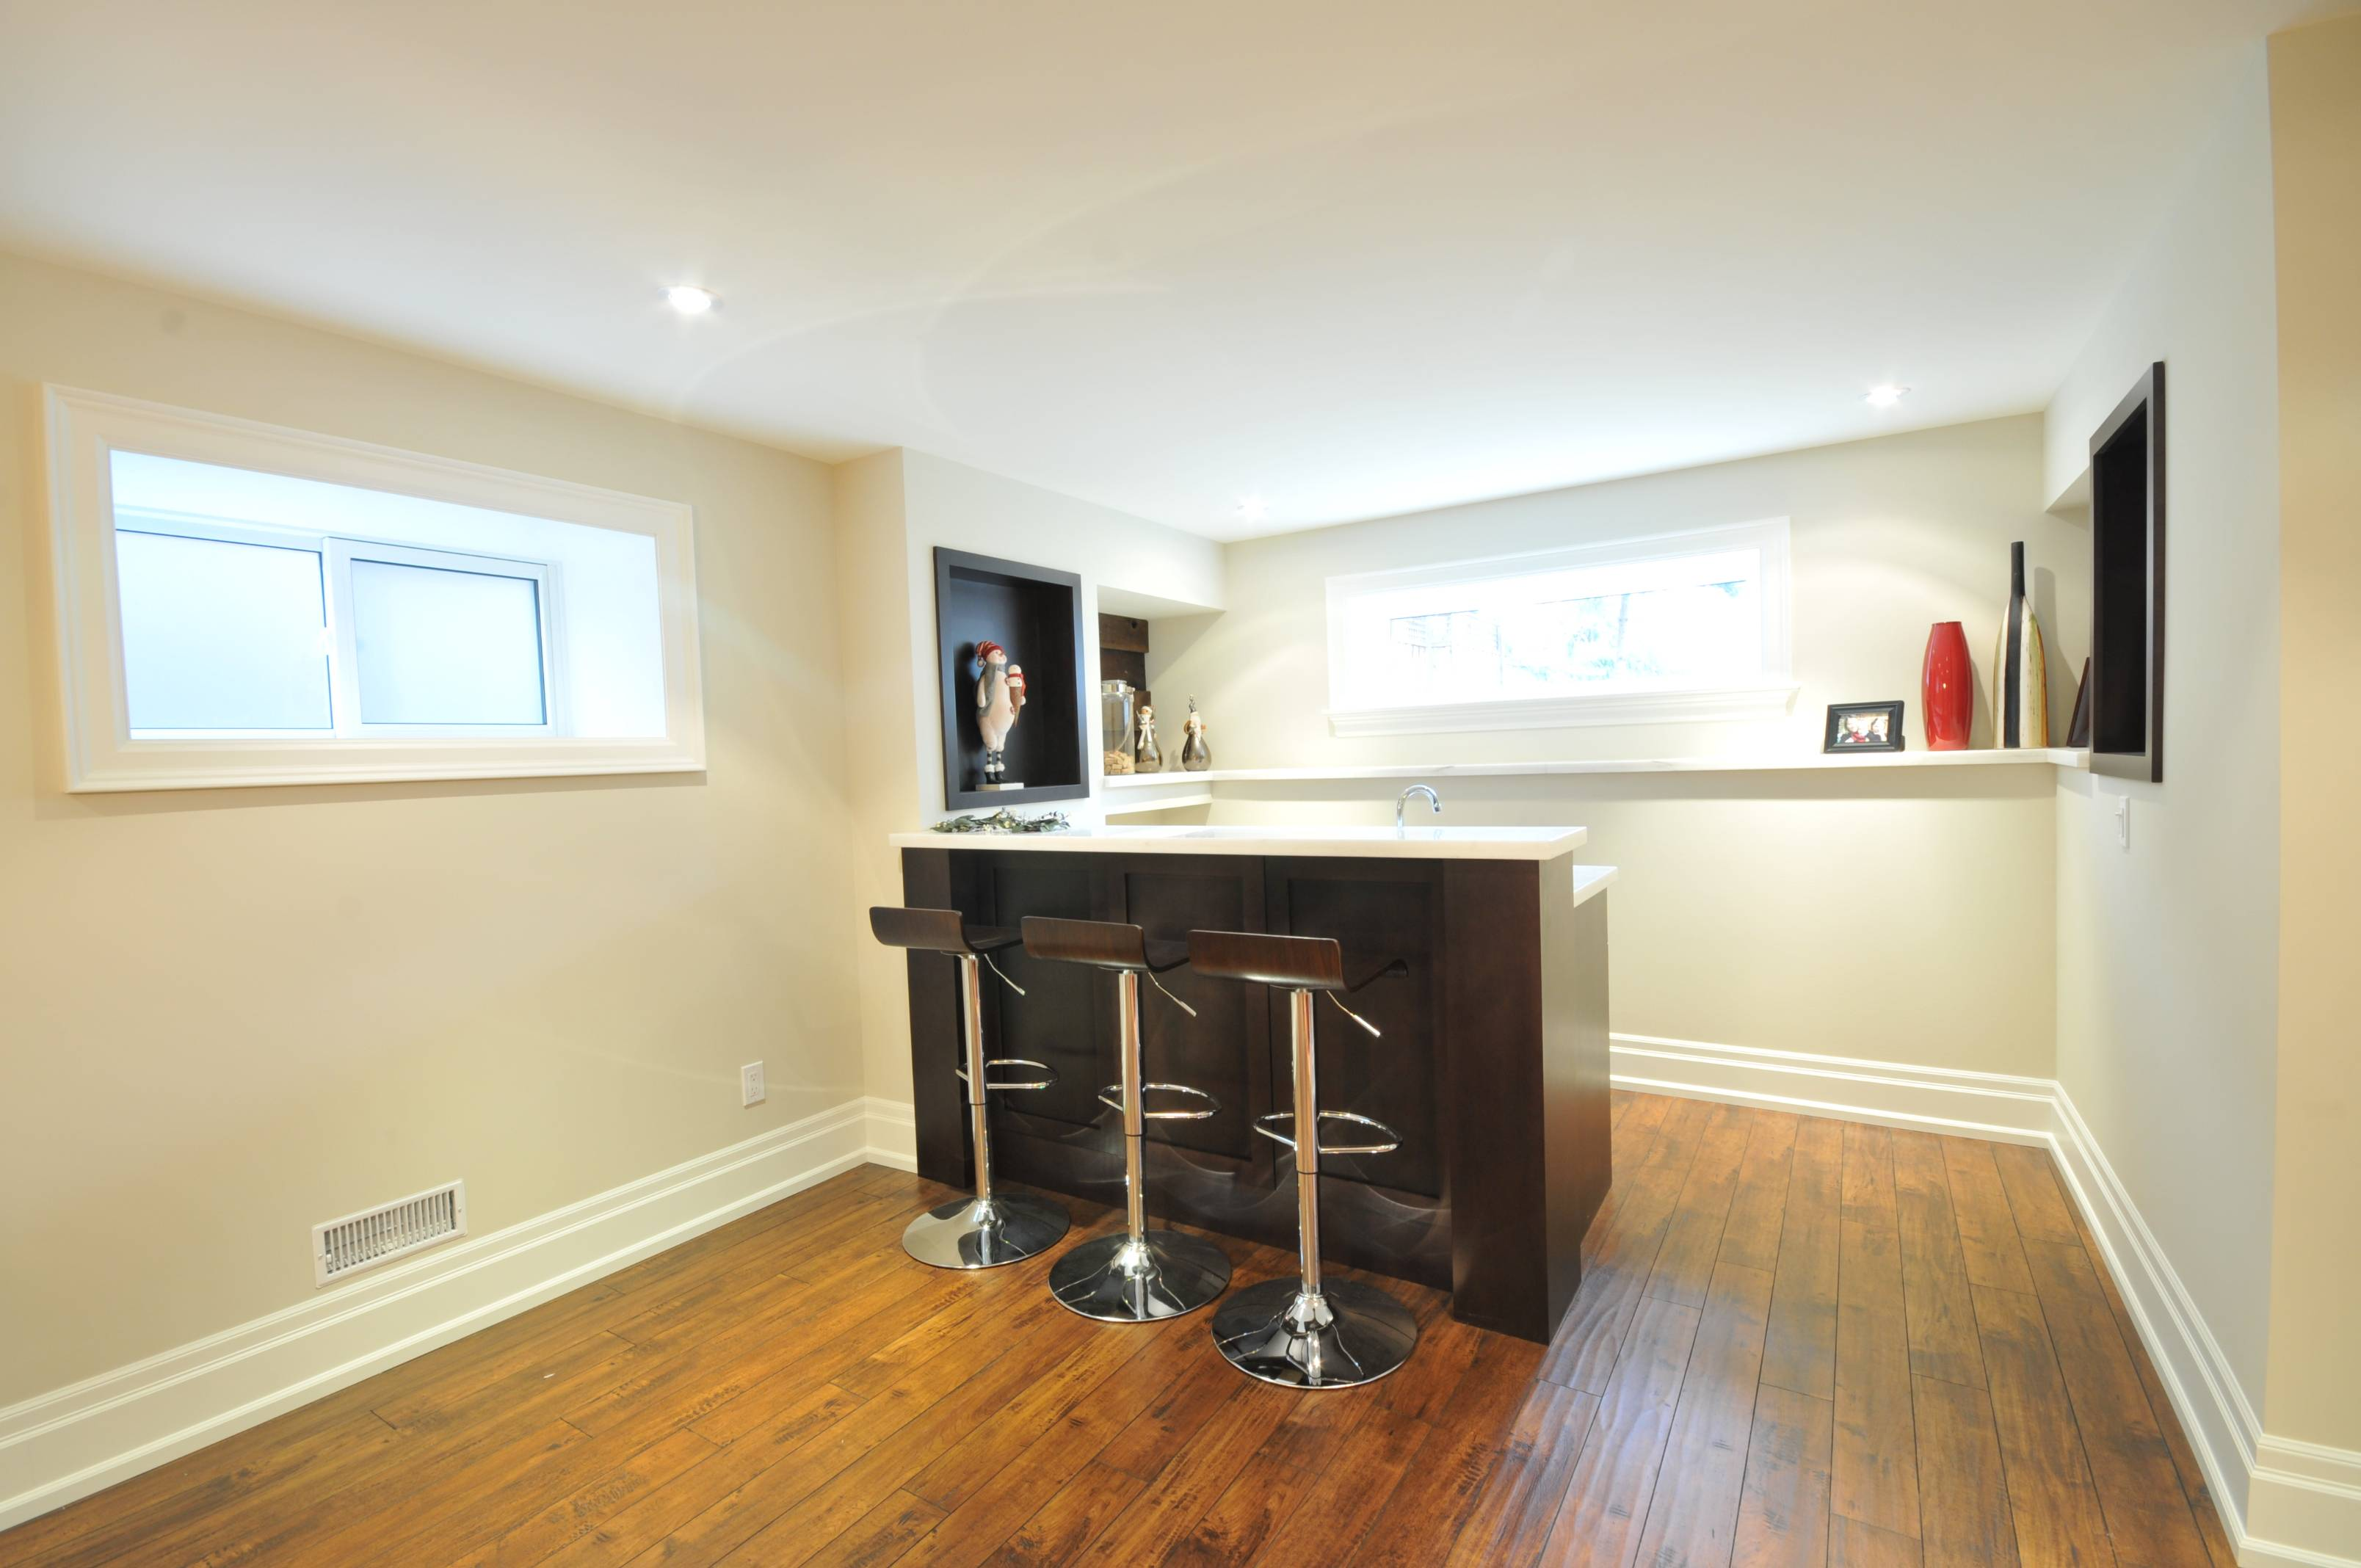 Kitchen Countertops by Wonder Stone and Counters Ltd